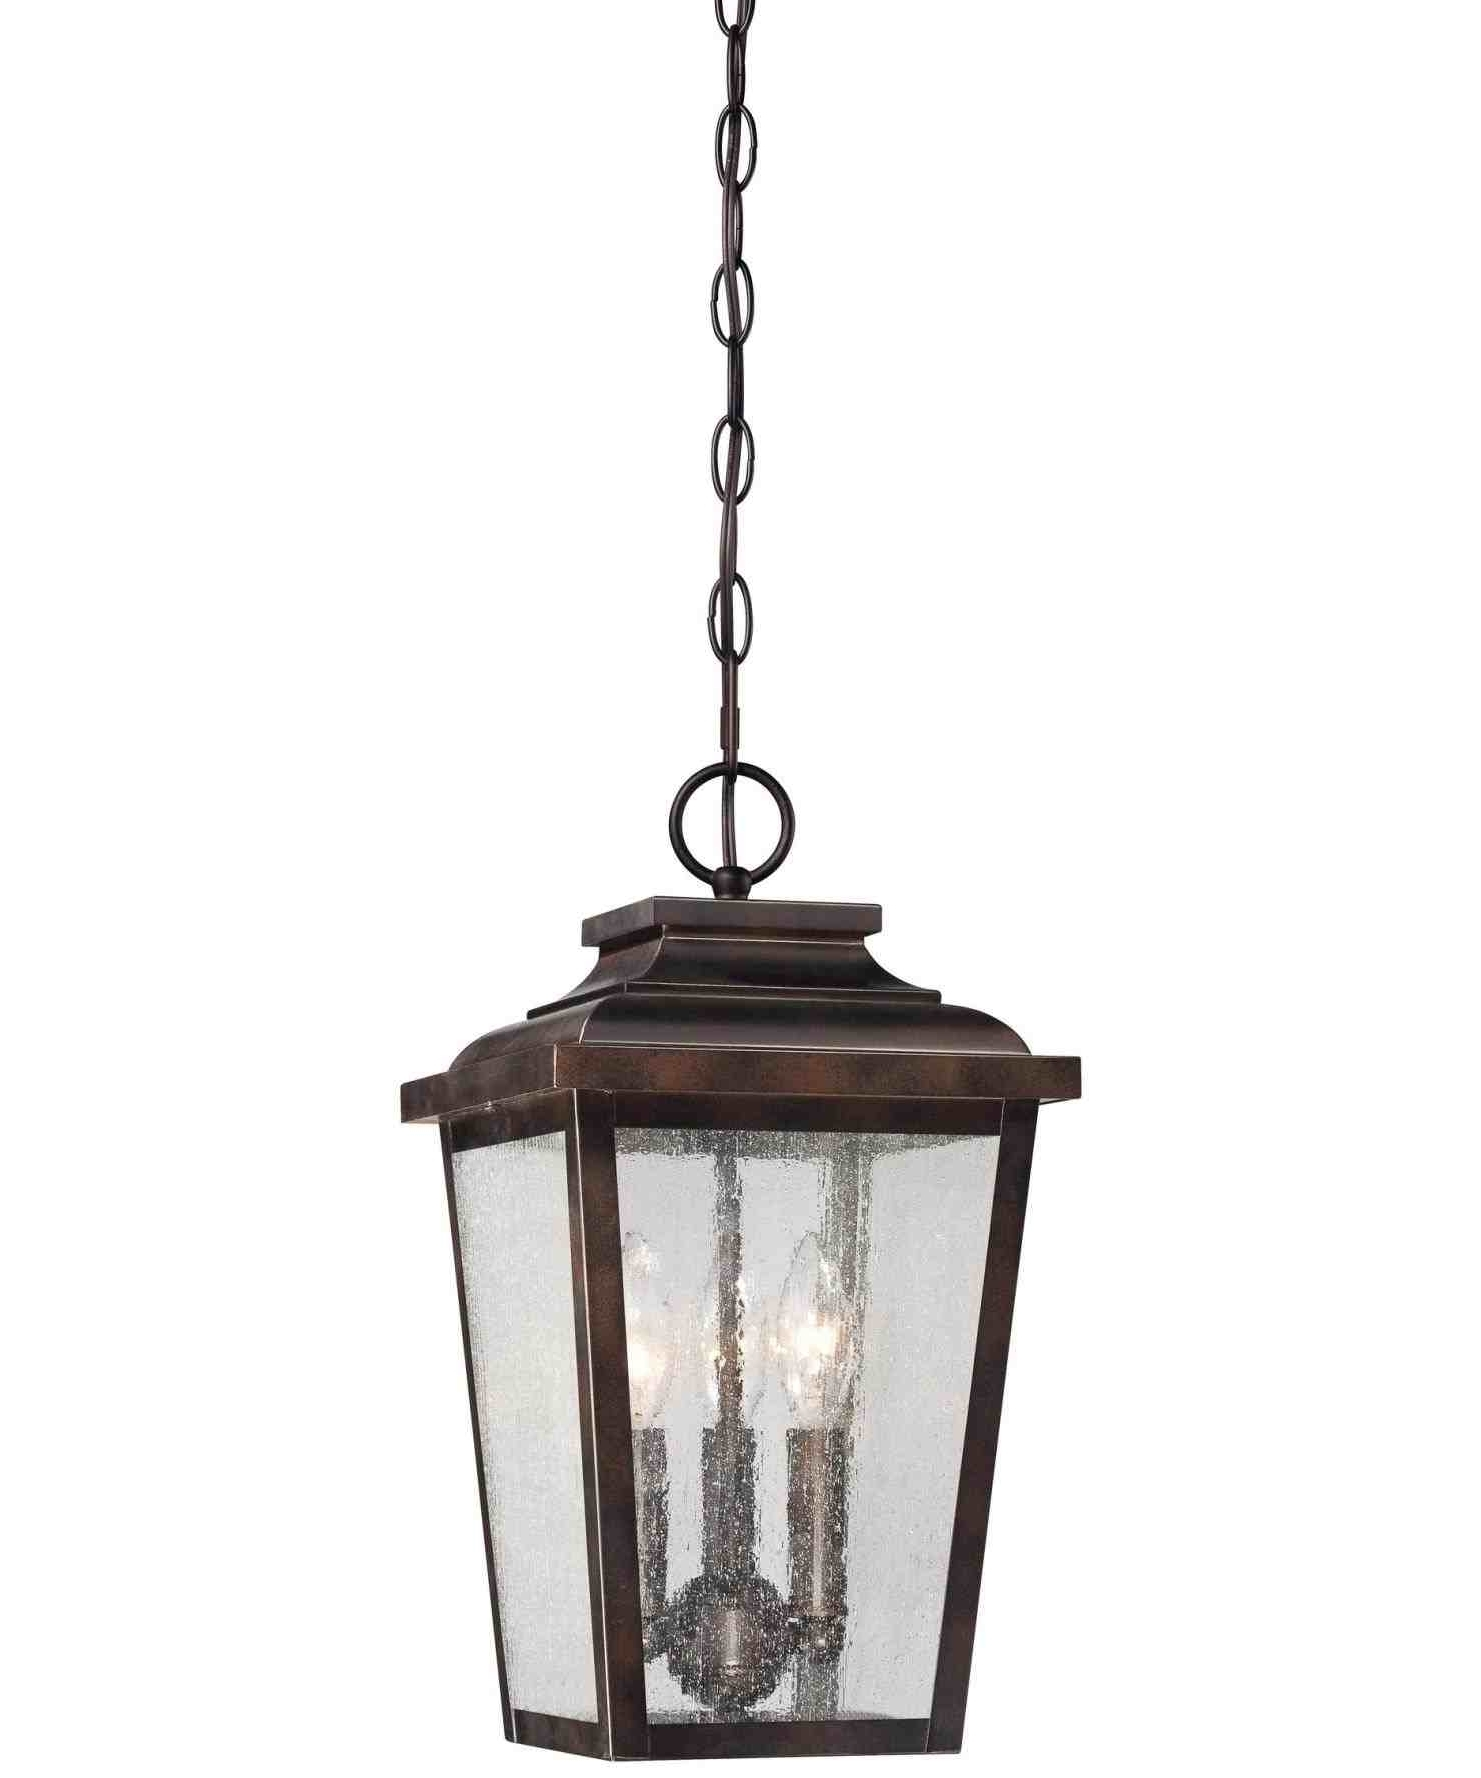 Hinkley Outdoor Hanging Lighting Lighting Edgewater Inch Wide Throughout Popular Hinkley Outdoor Hanging Lights (View 10 of 20)